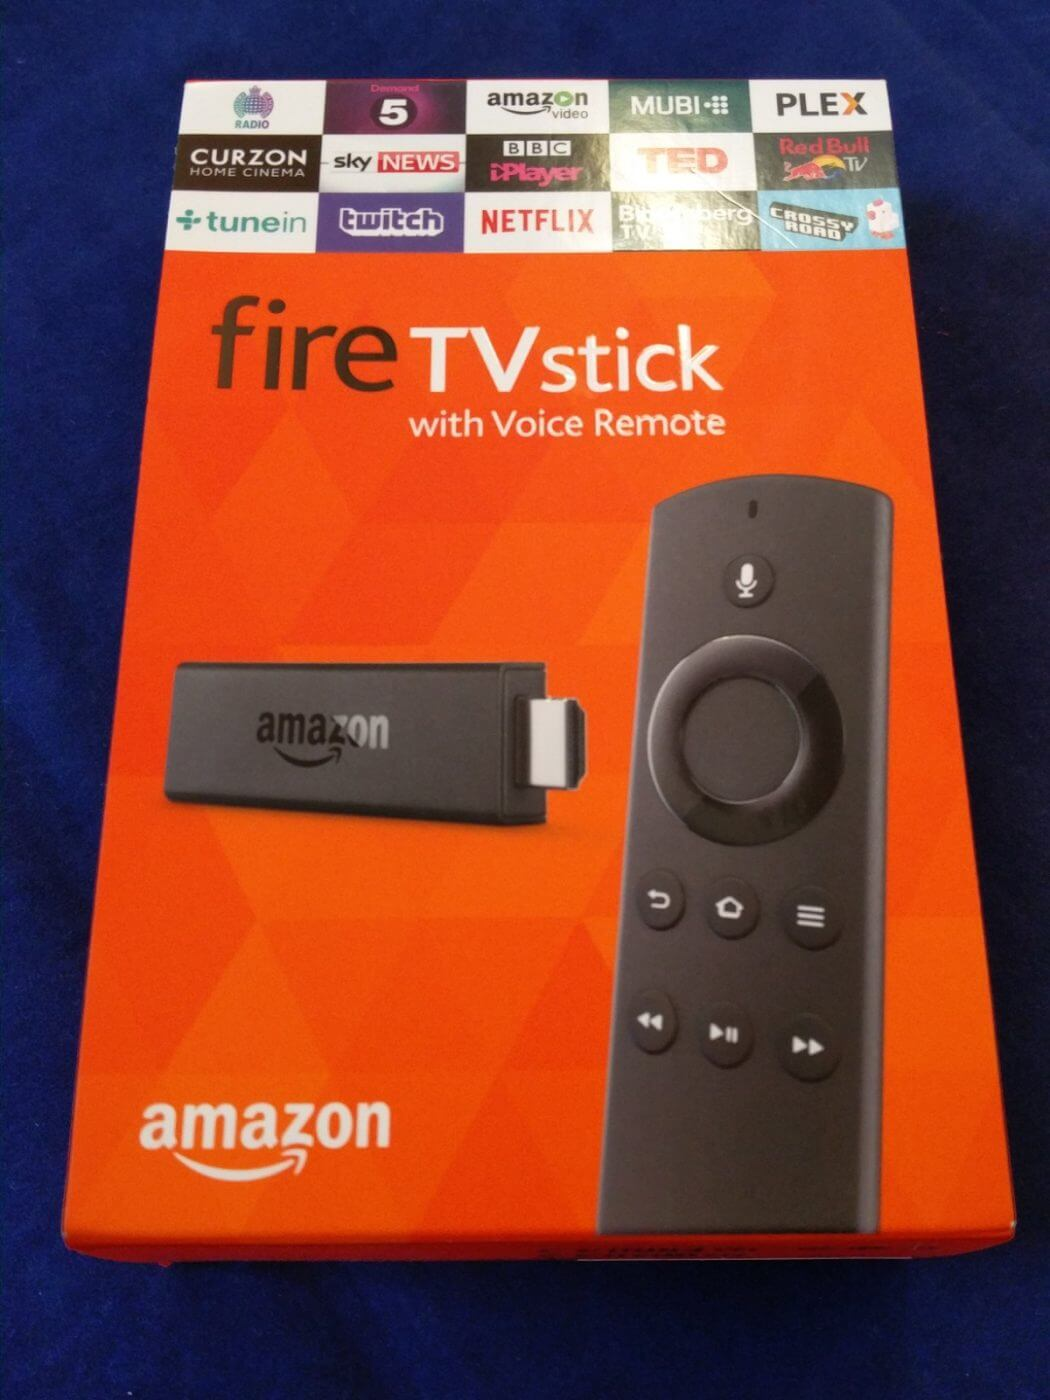 Amazon Fire TV Stick with Voice Remote Review - Geek News Central